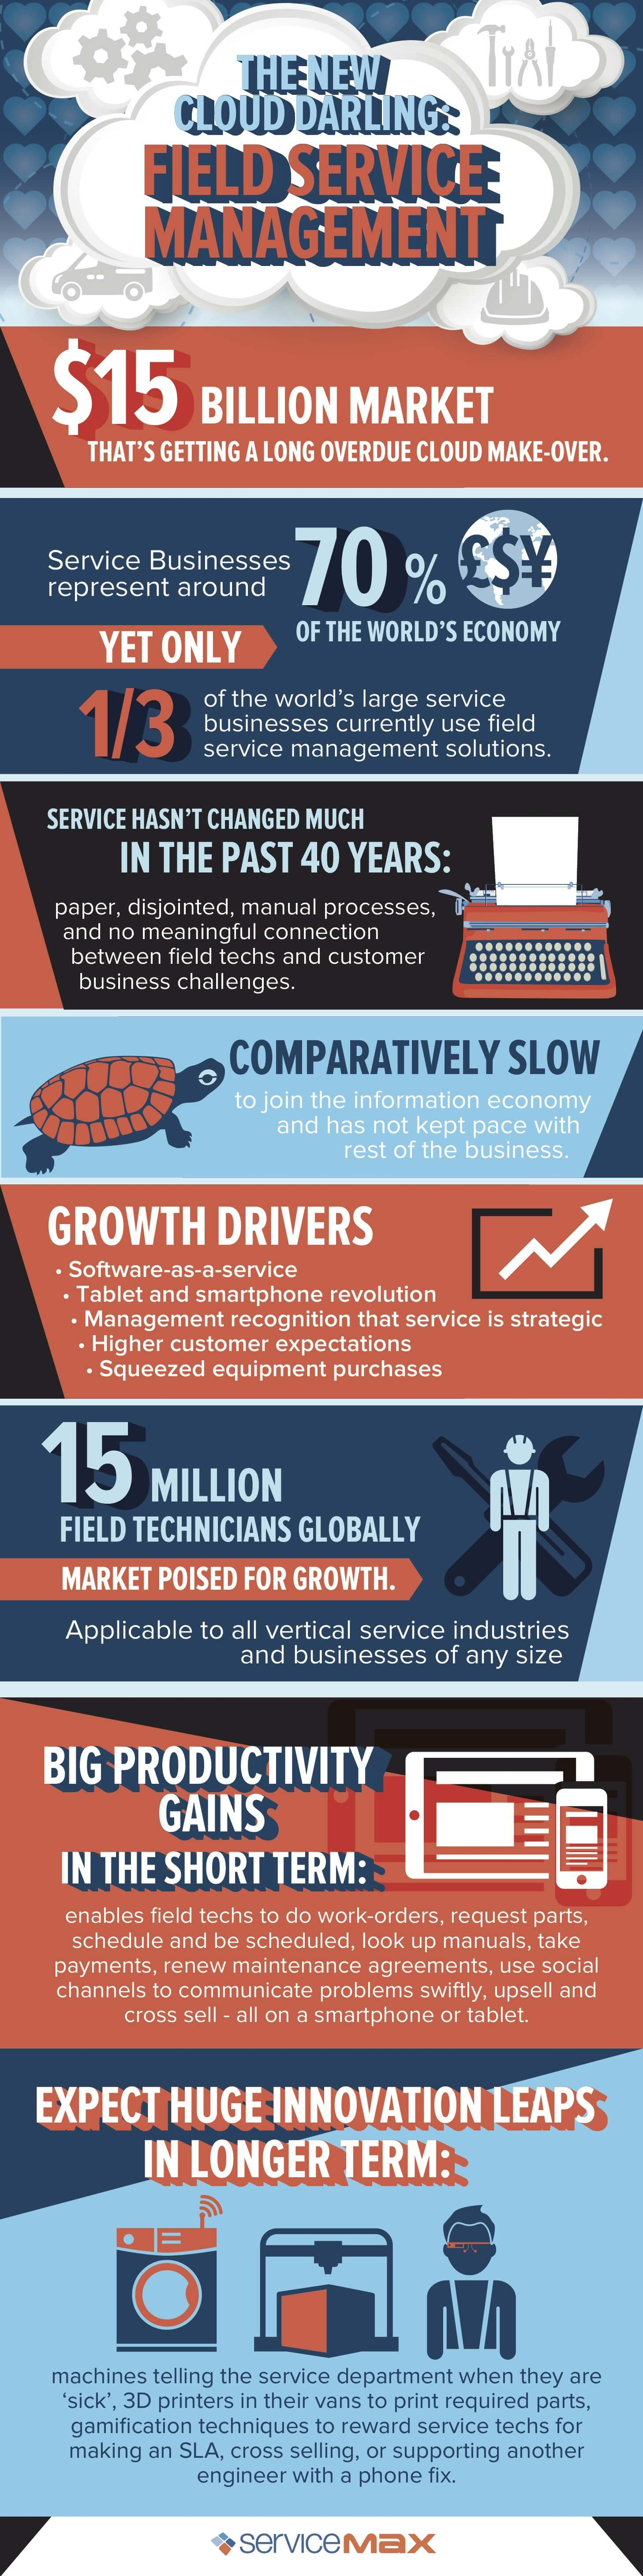 INFOGRAPHIC - The New Cloud Darling